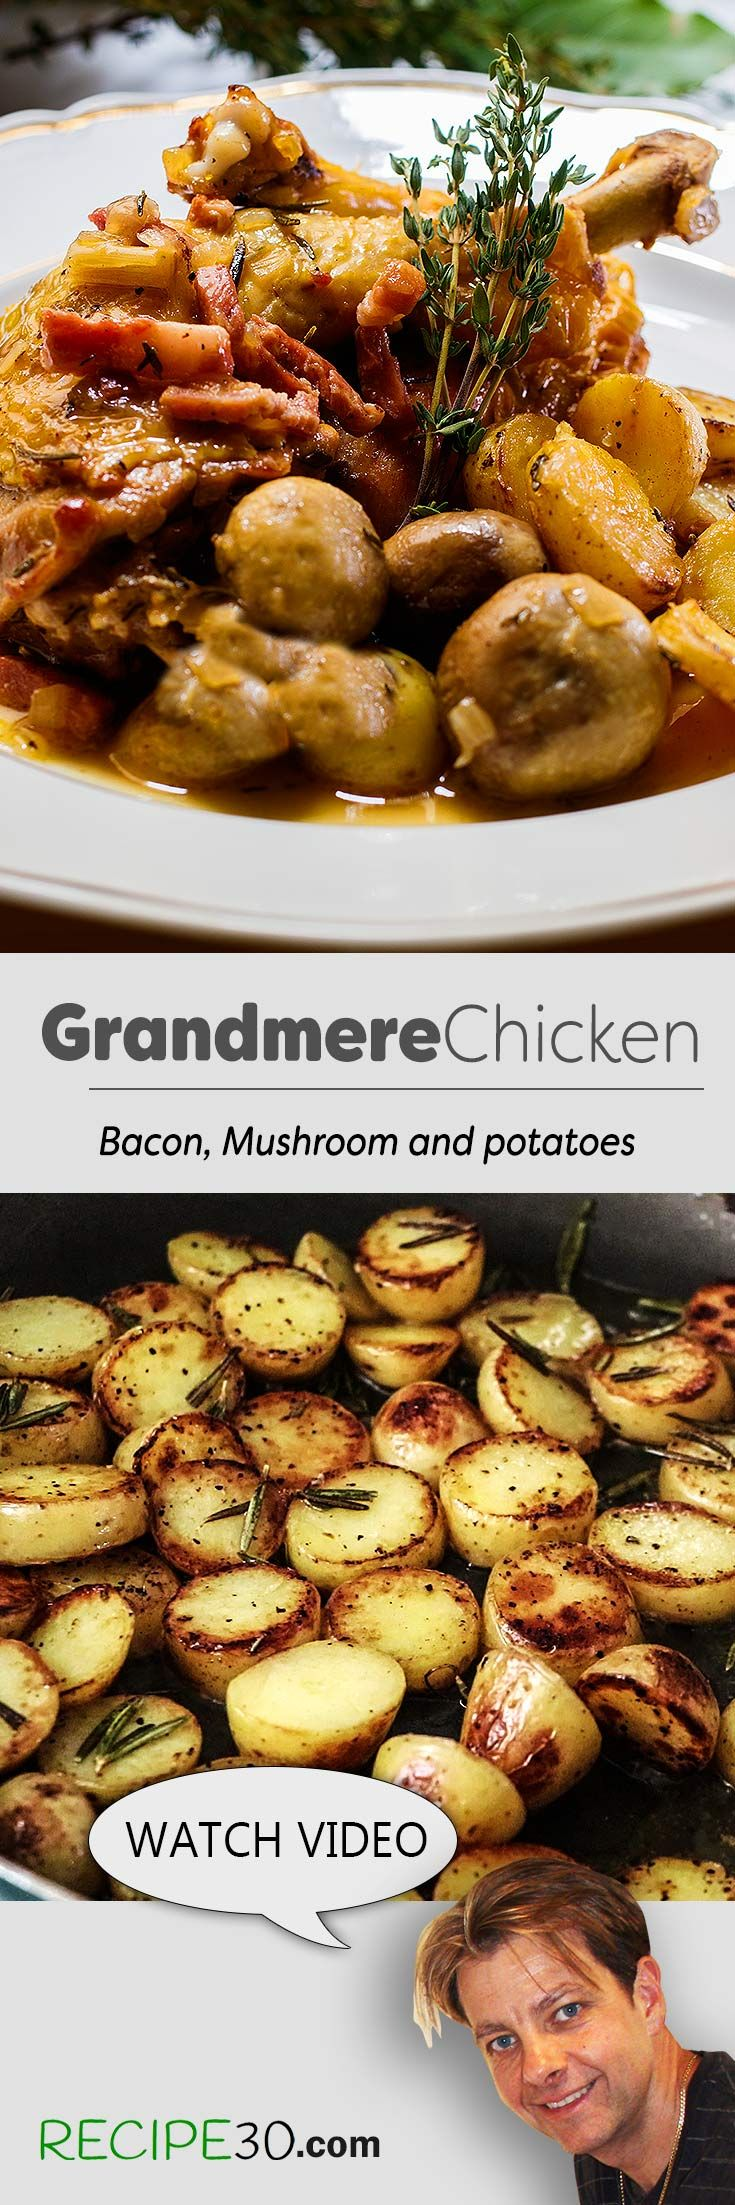 Poulet Cocotte Grand Mere Chicken with Bacon and Mushrooms in White Wine  I recently travelled to France and therefore thought I would share this simple yet tasty family chicken recipe. The name means chicken grand mother in a pot. It's made with simple fresh ingredients and the result is amazing. Watch video for recipe and see some of the streets of Paris where I bought my ingredients.